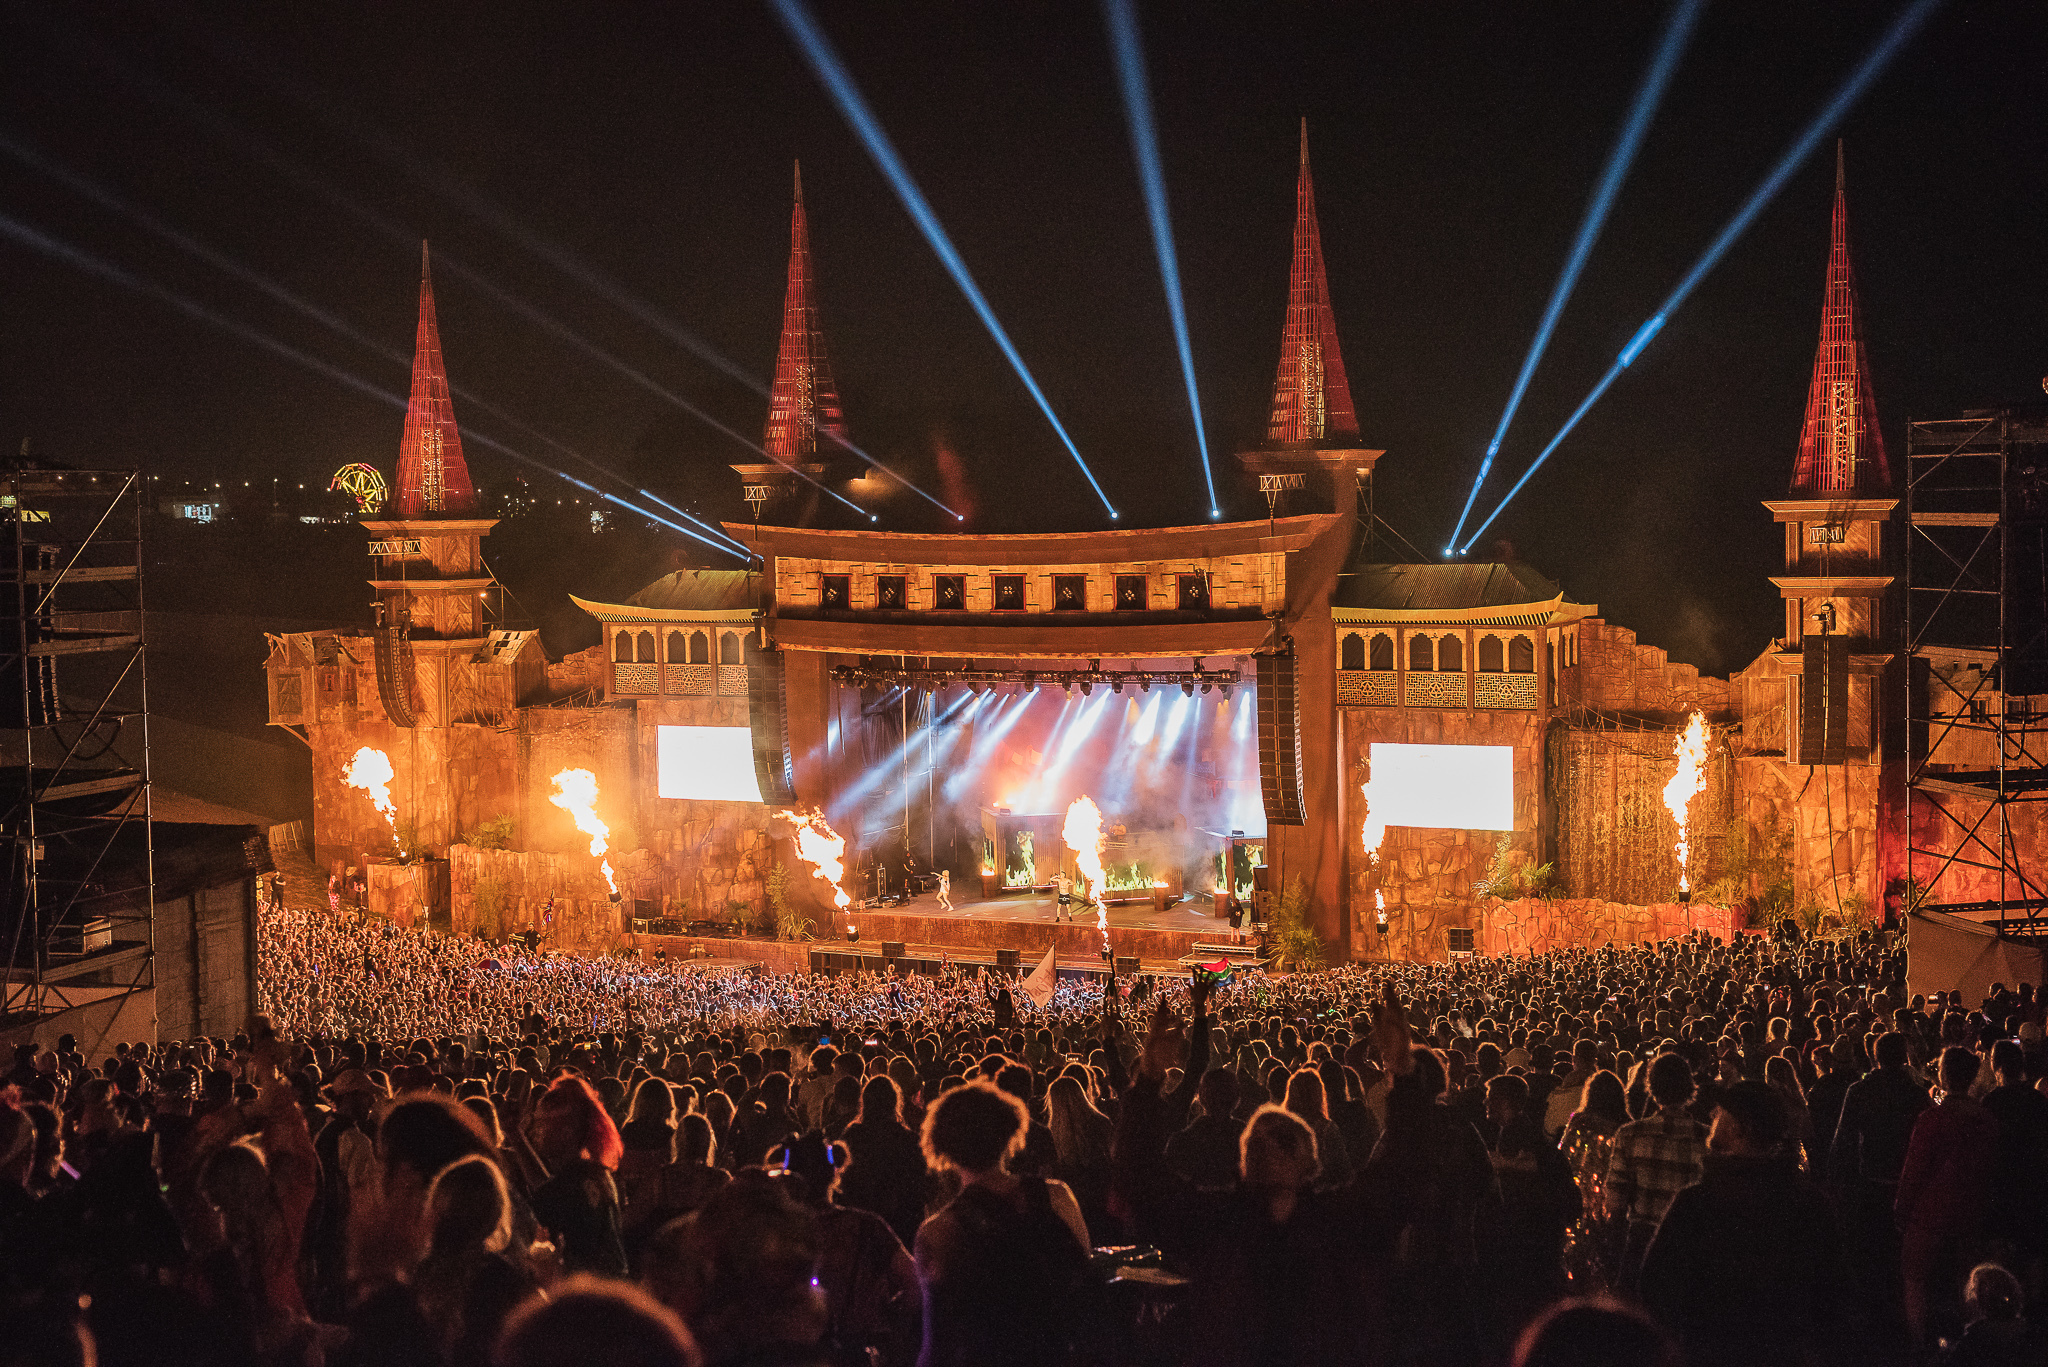 The getaway begins as Boomtown Fair comes to a close